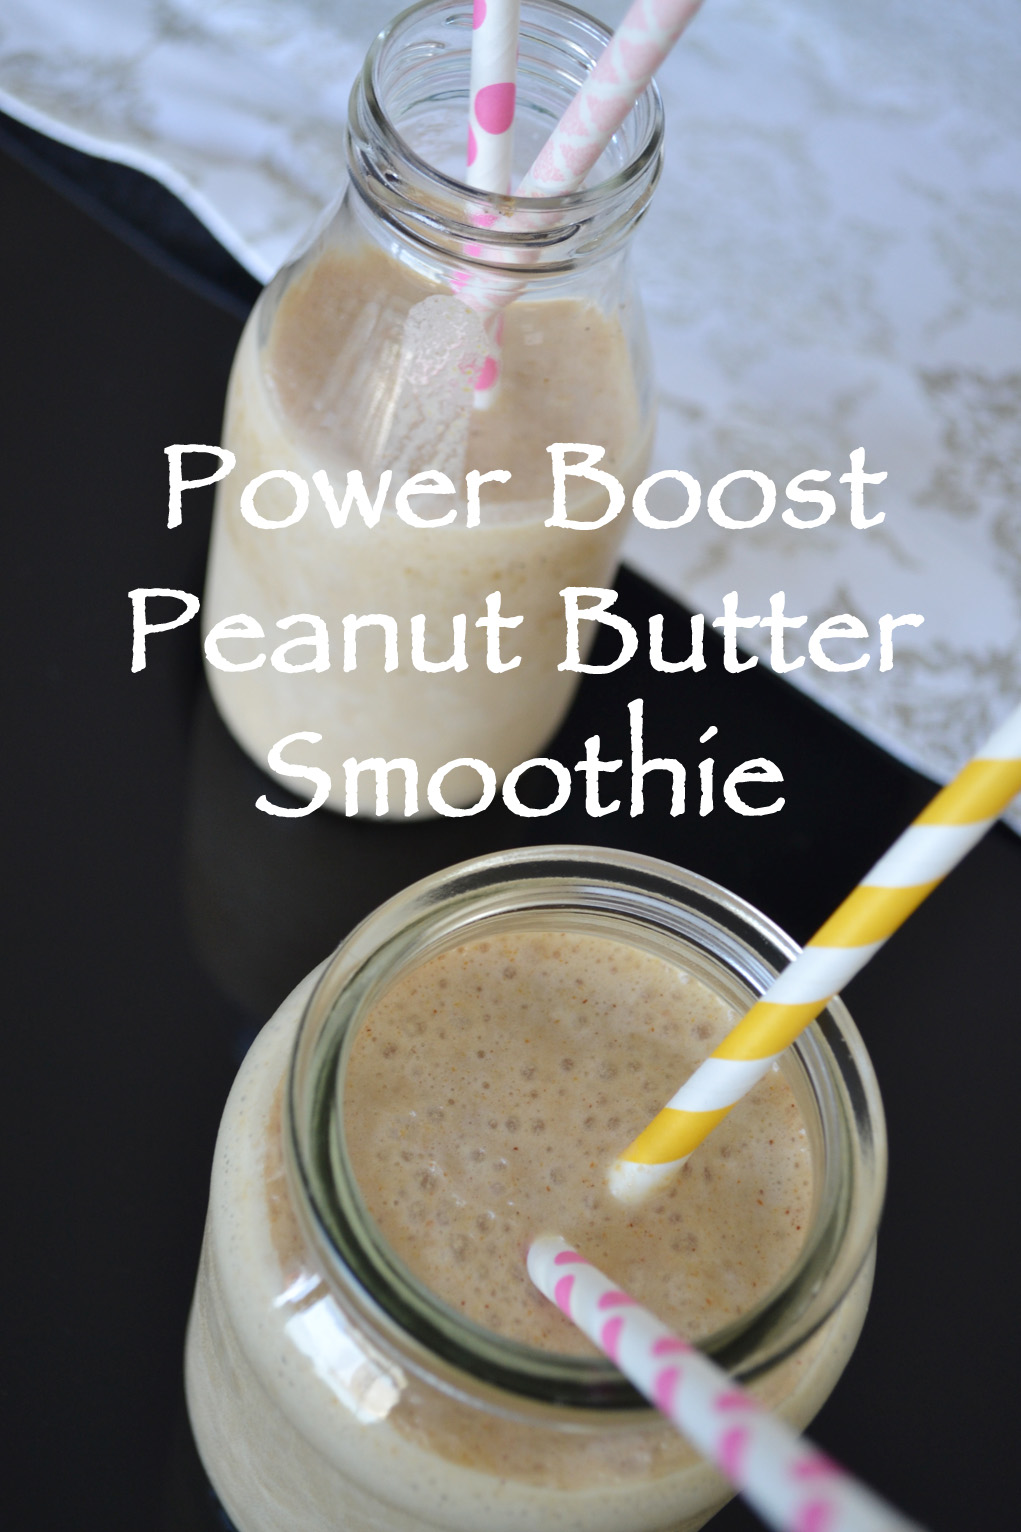 Power smoothie and start your day with energy !!